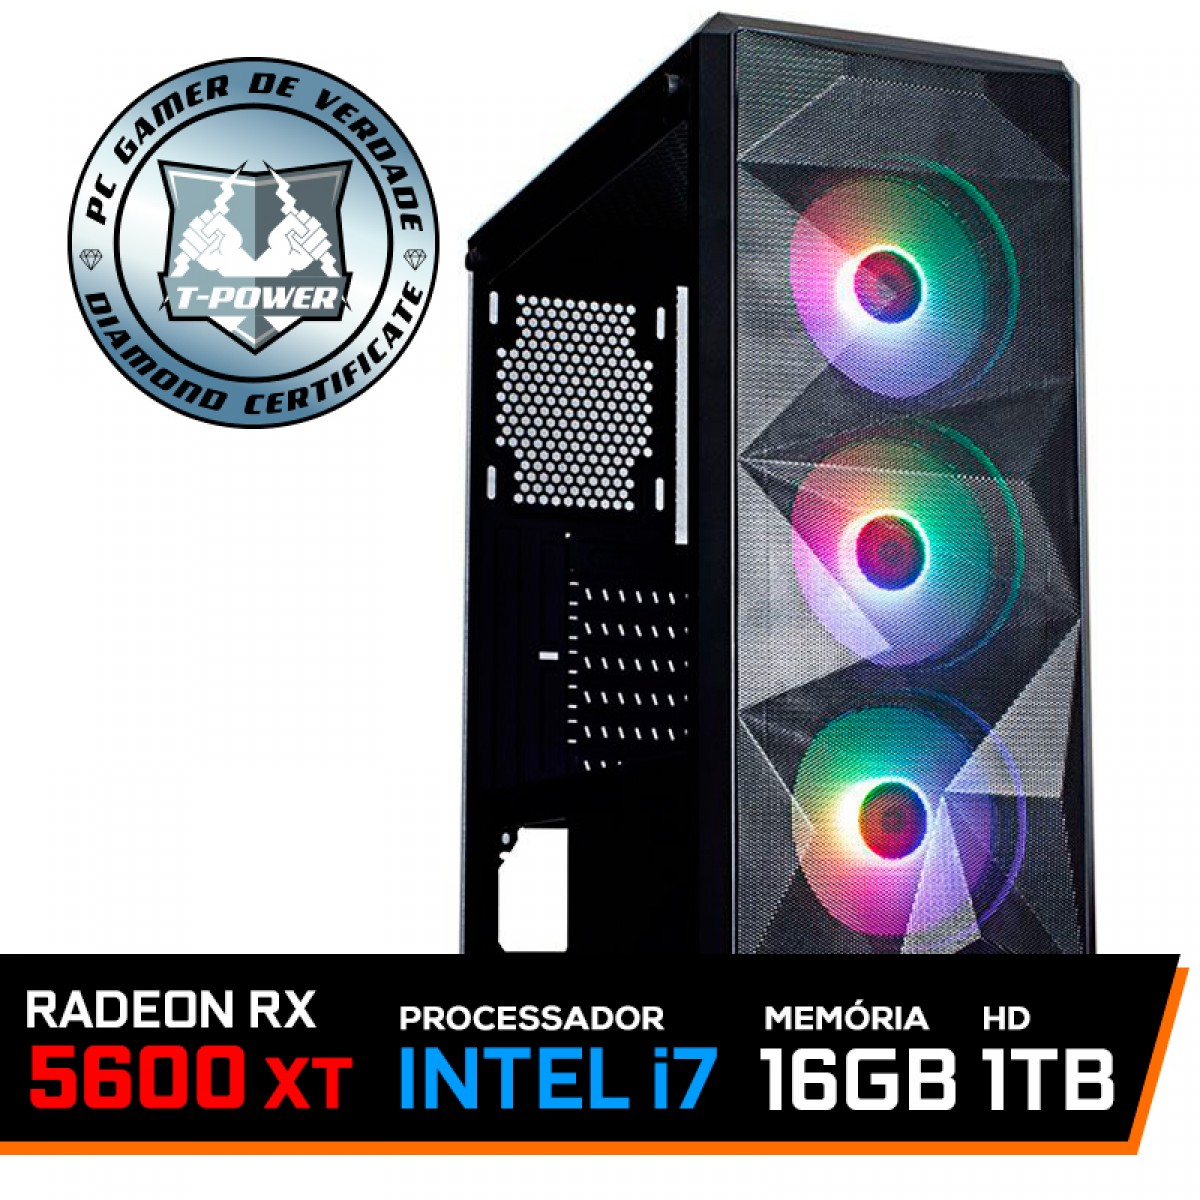 Pc Gamer T-Power Strong Lvl-1 Intel Core i7 10700 / Radeon RX 5600 XT 6GB / DDR4 16GB / HD 1TB / 600W